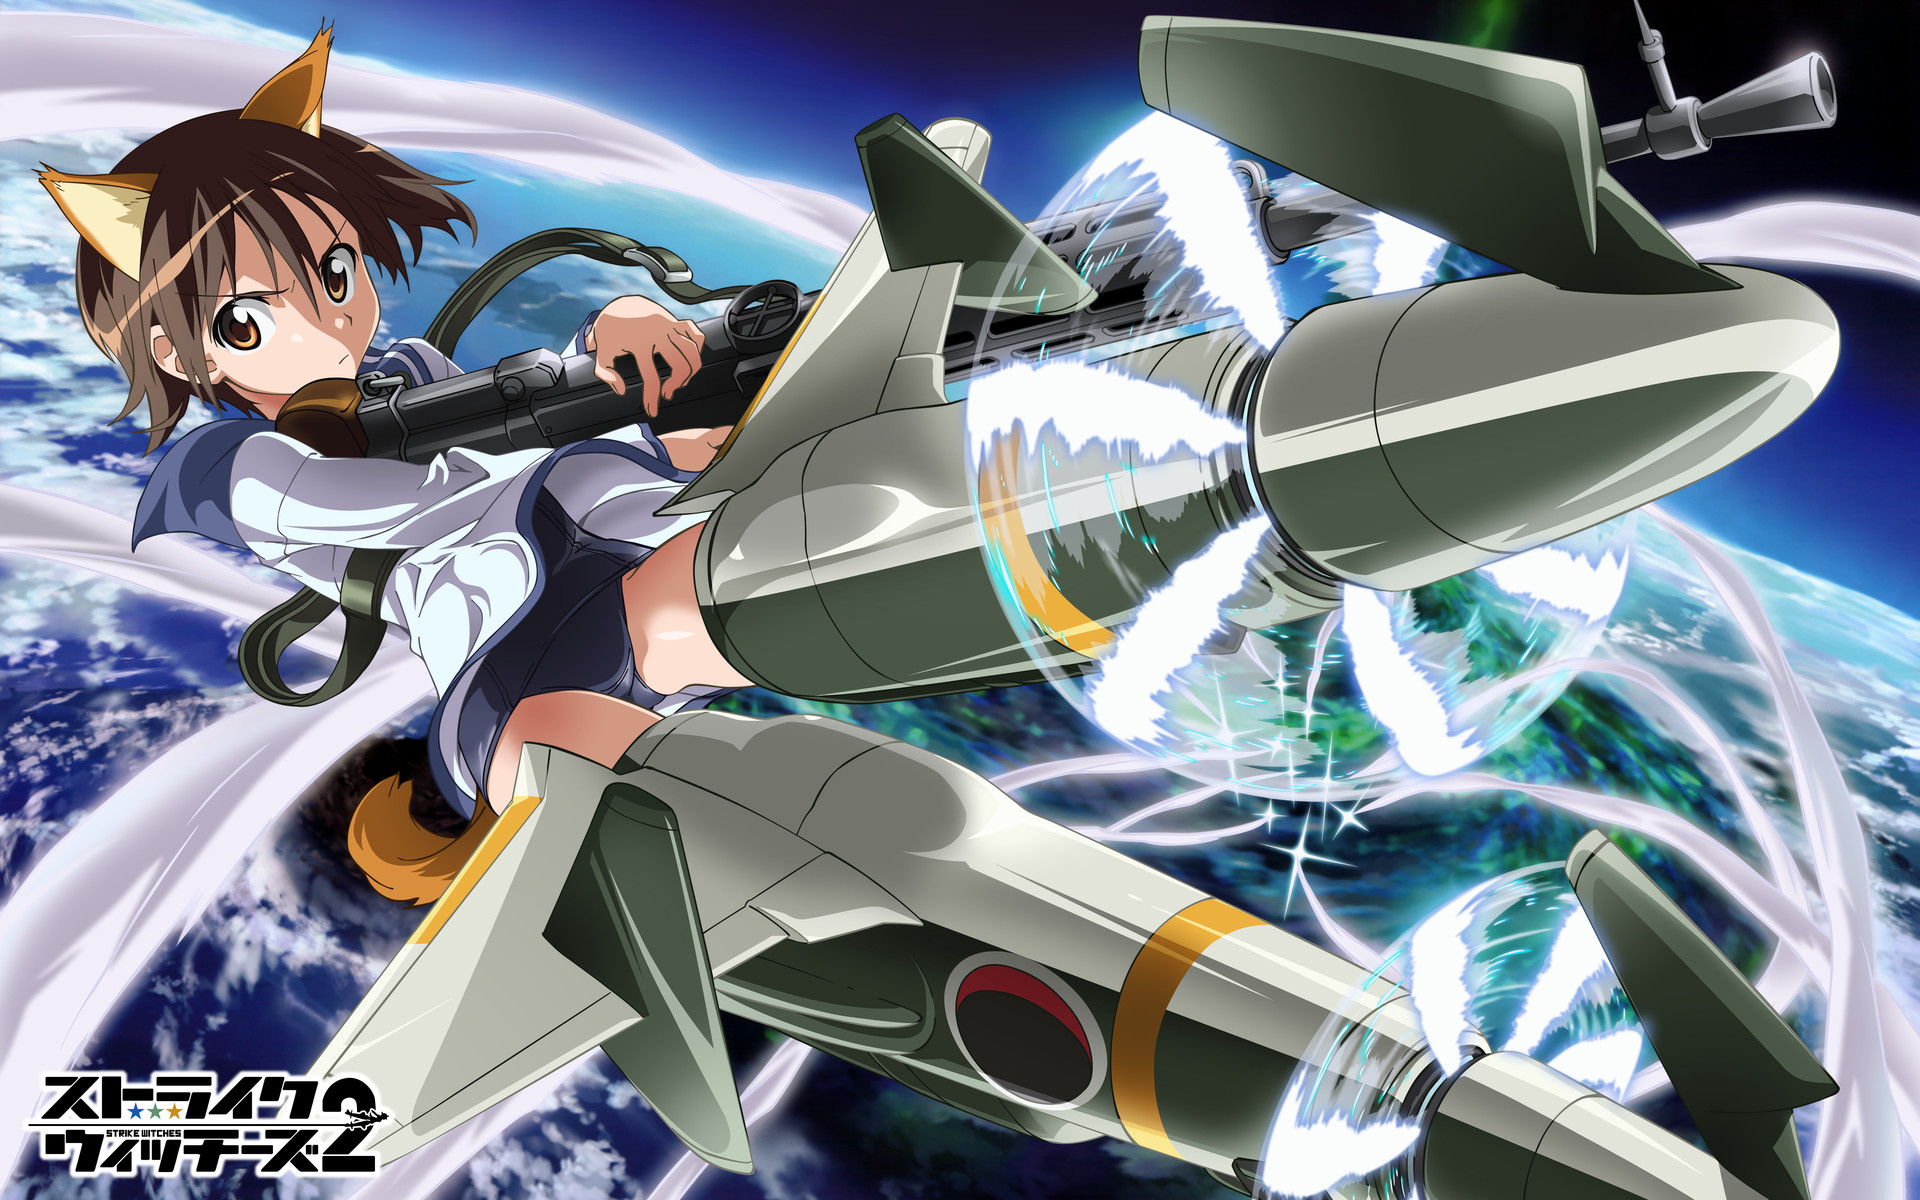 [Anime do Mês] - Strike Witches 805799-new-strike-witches-wallpaper-1920x1200